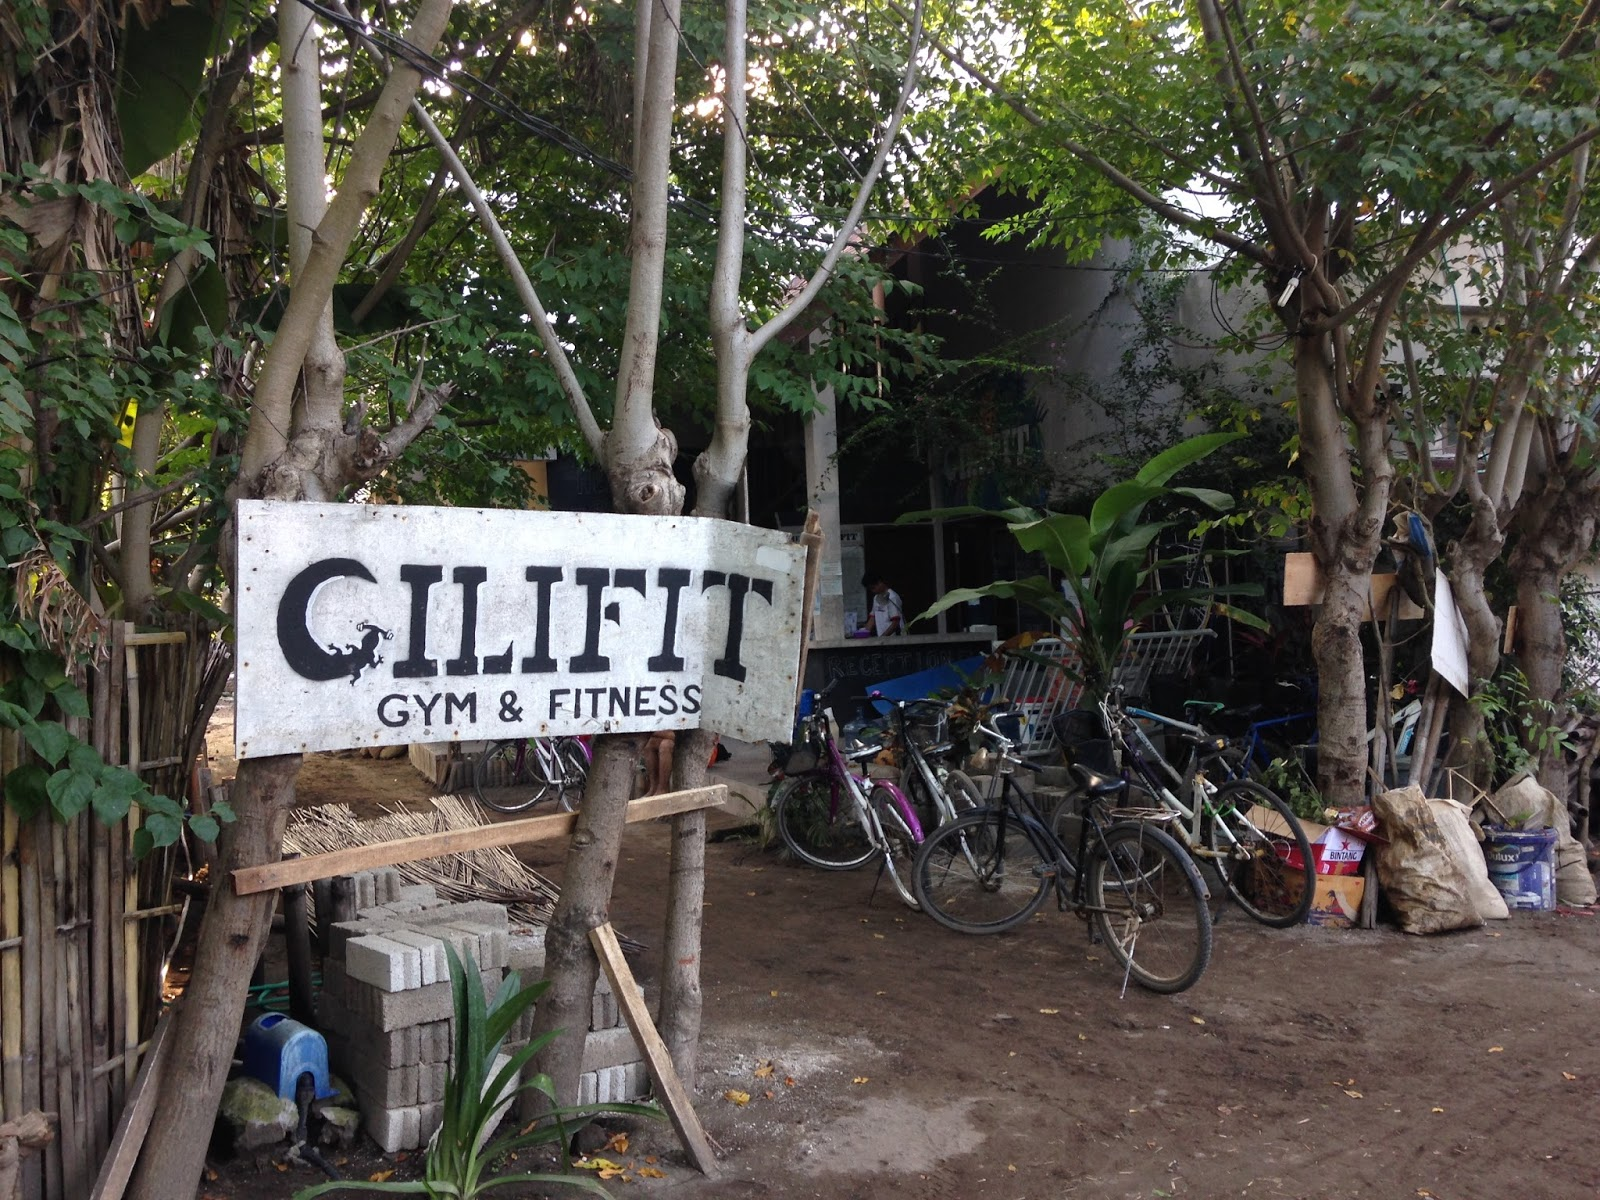 GilIFit Gym & Fitness